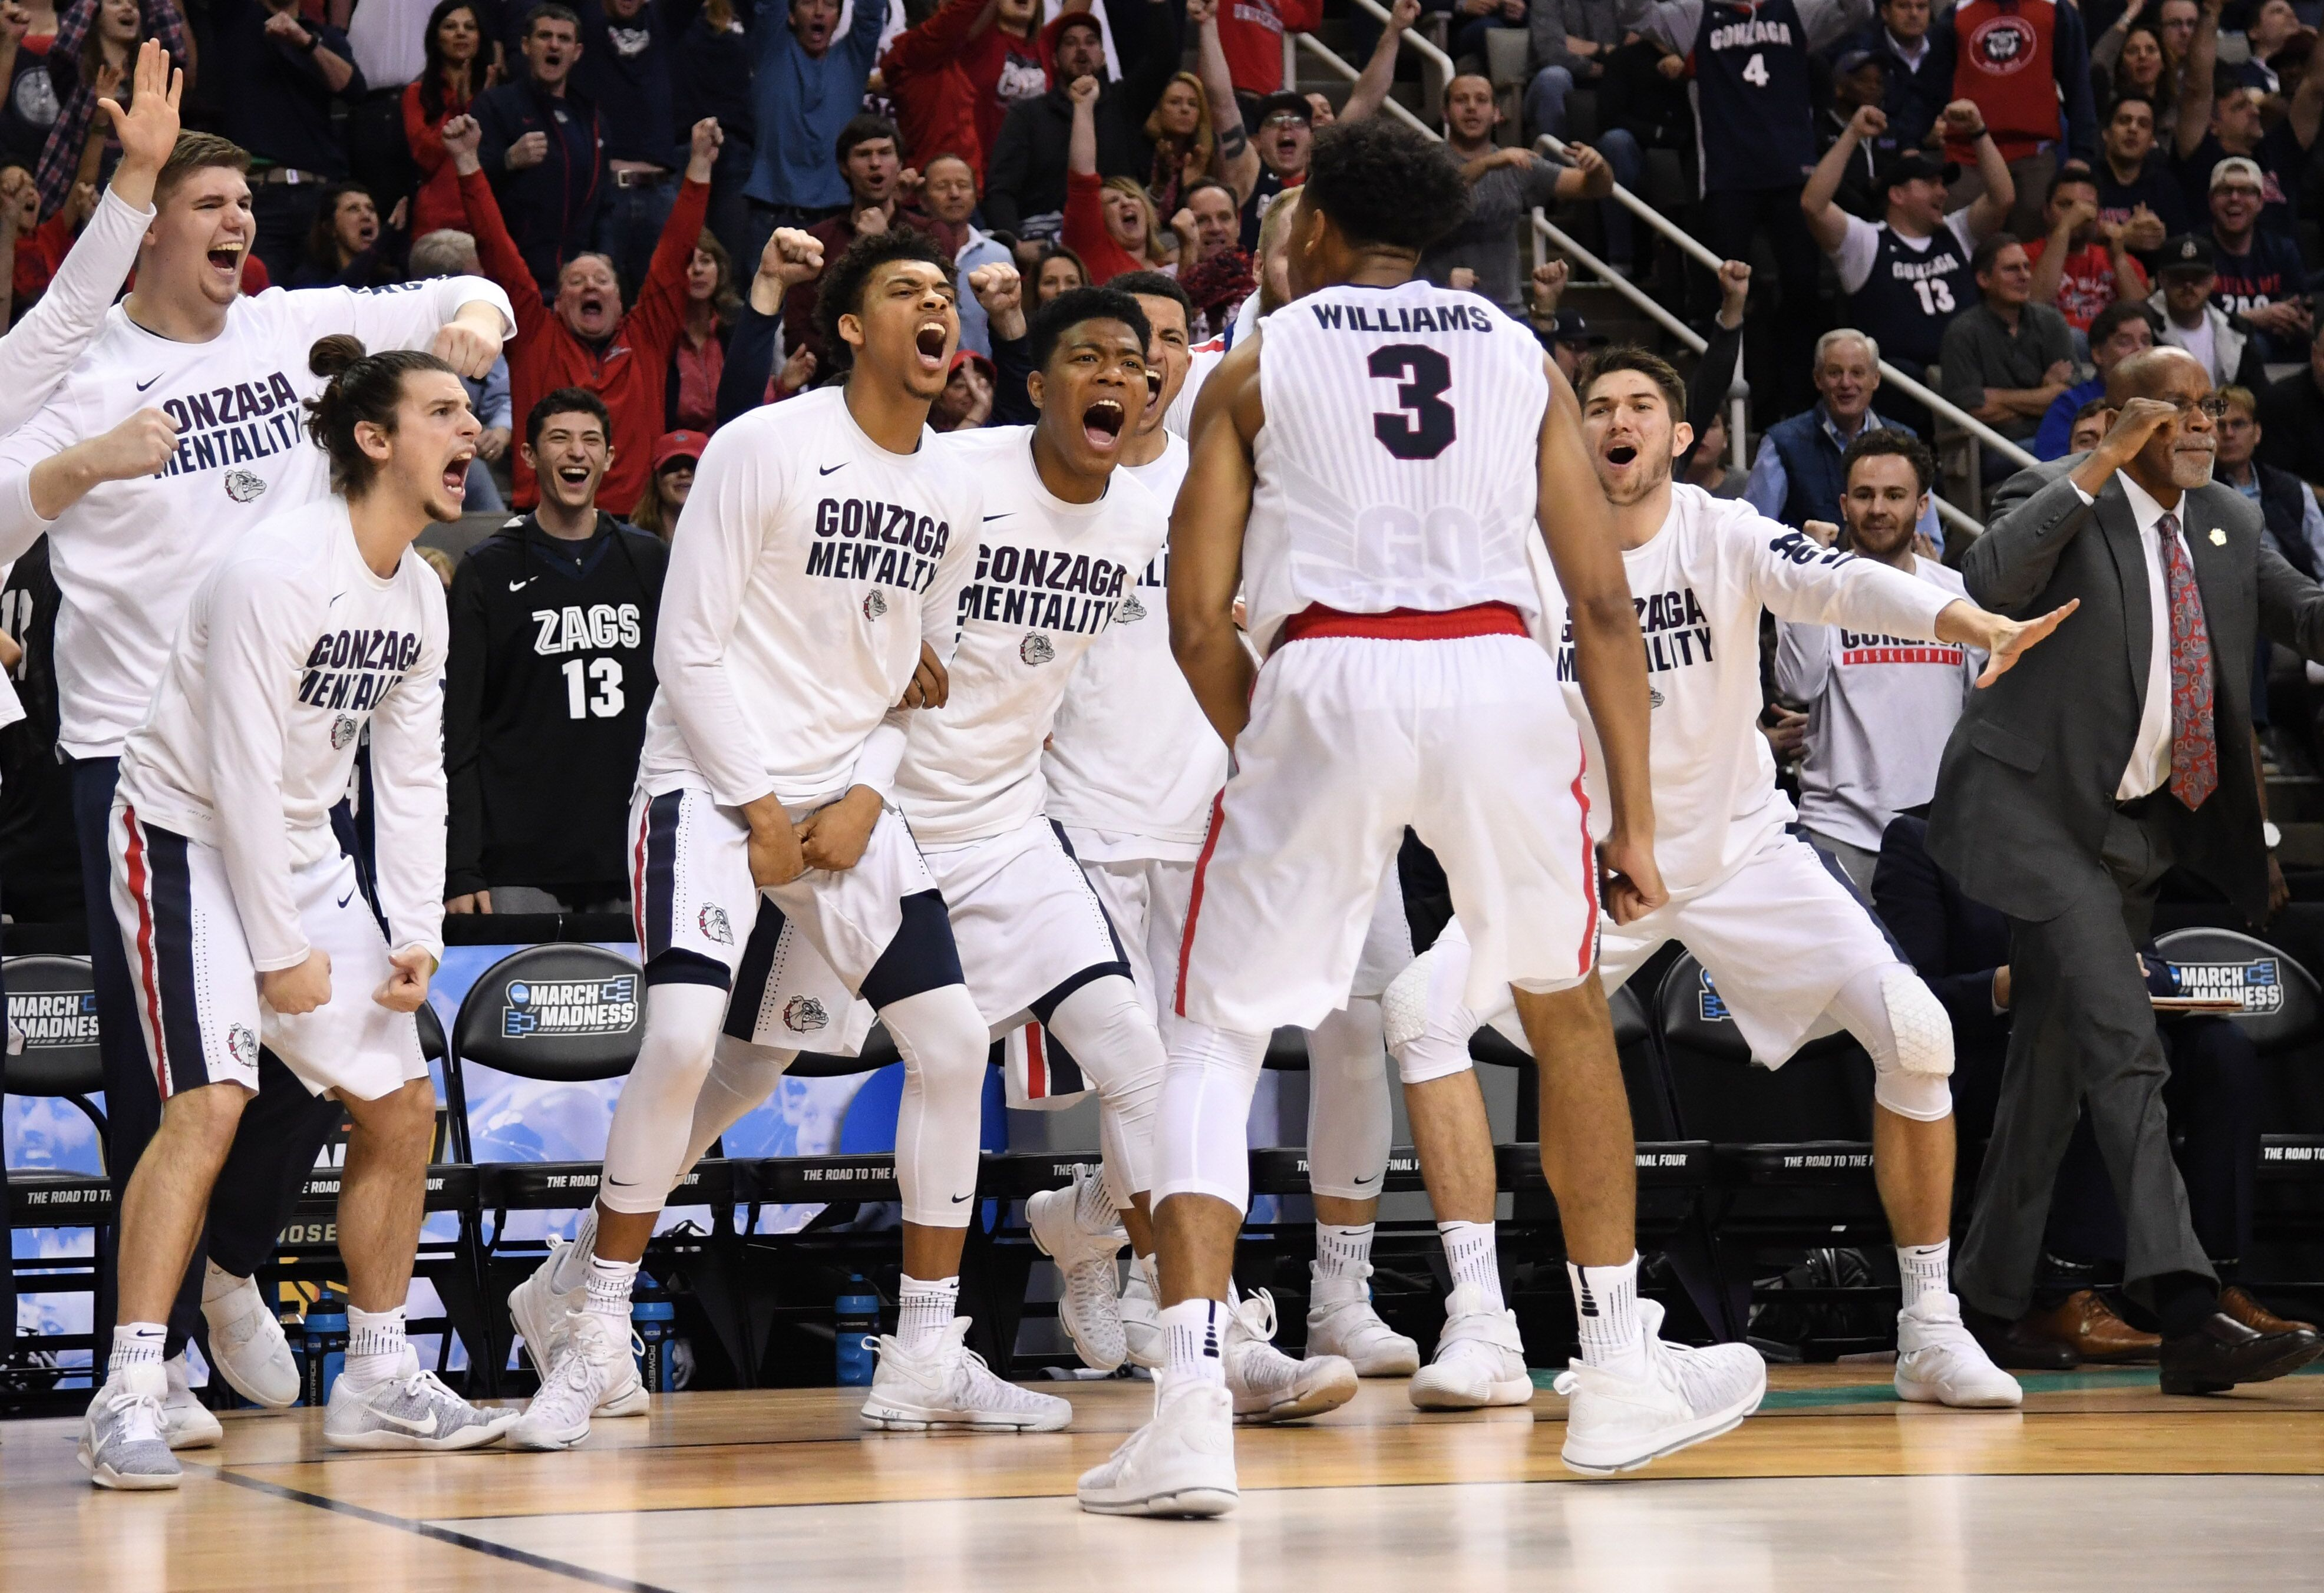 where is gonzaga playing in the ncaa tournament